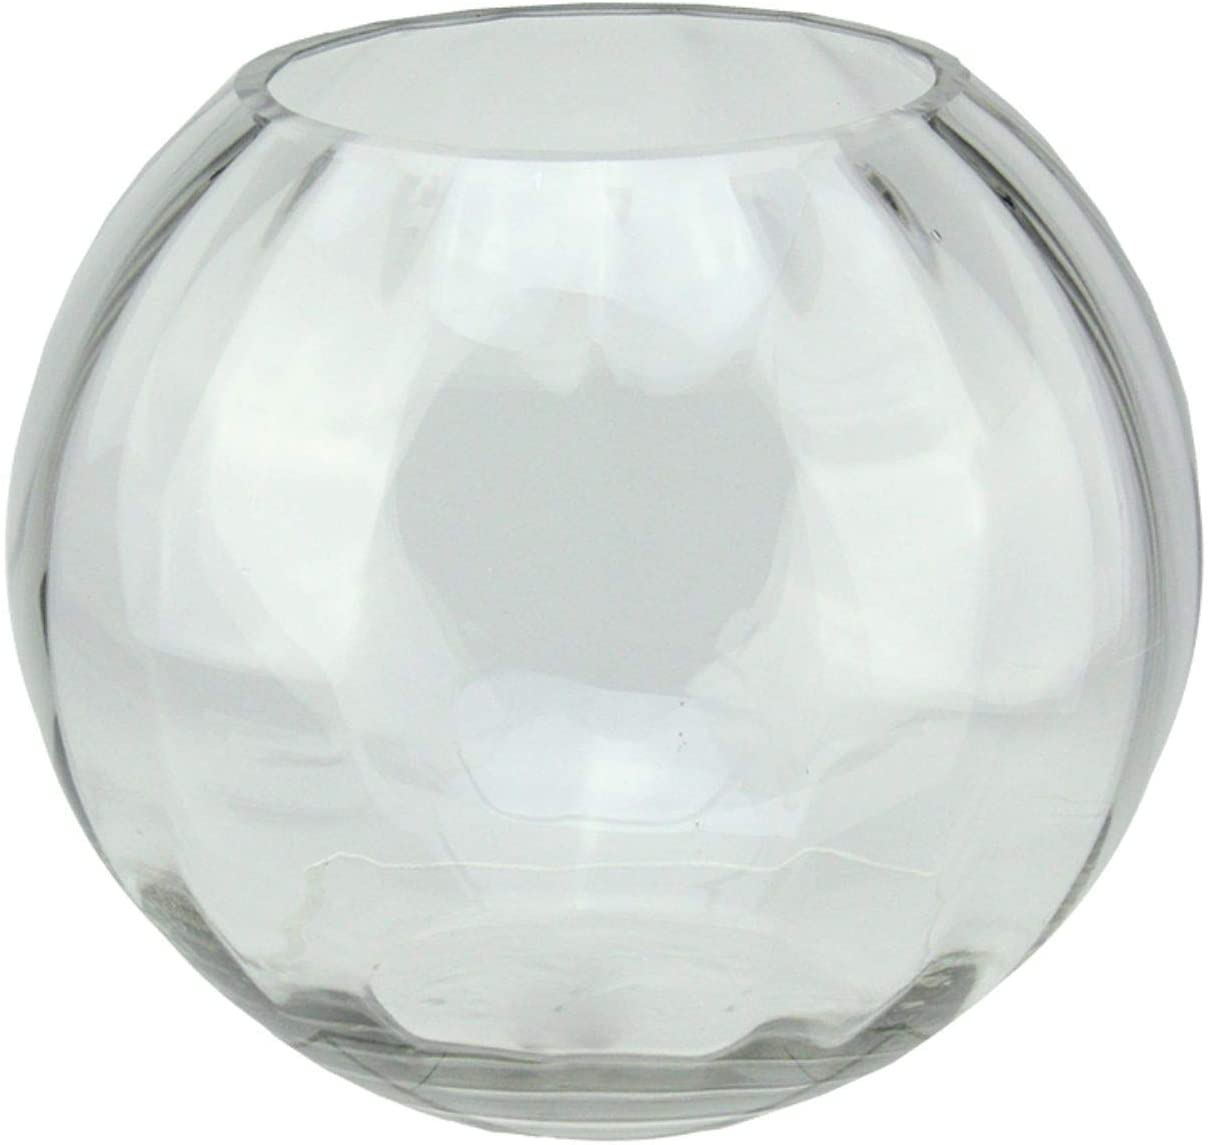 Northlight 8.75 Clear Round Segmented Transparent Glass Bowl